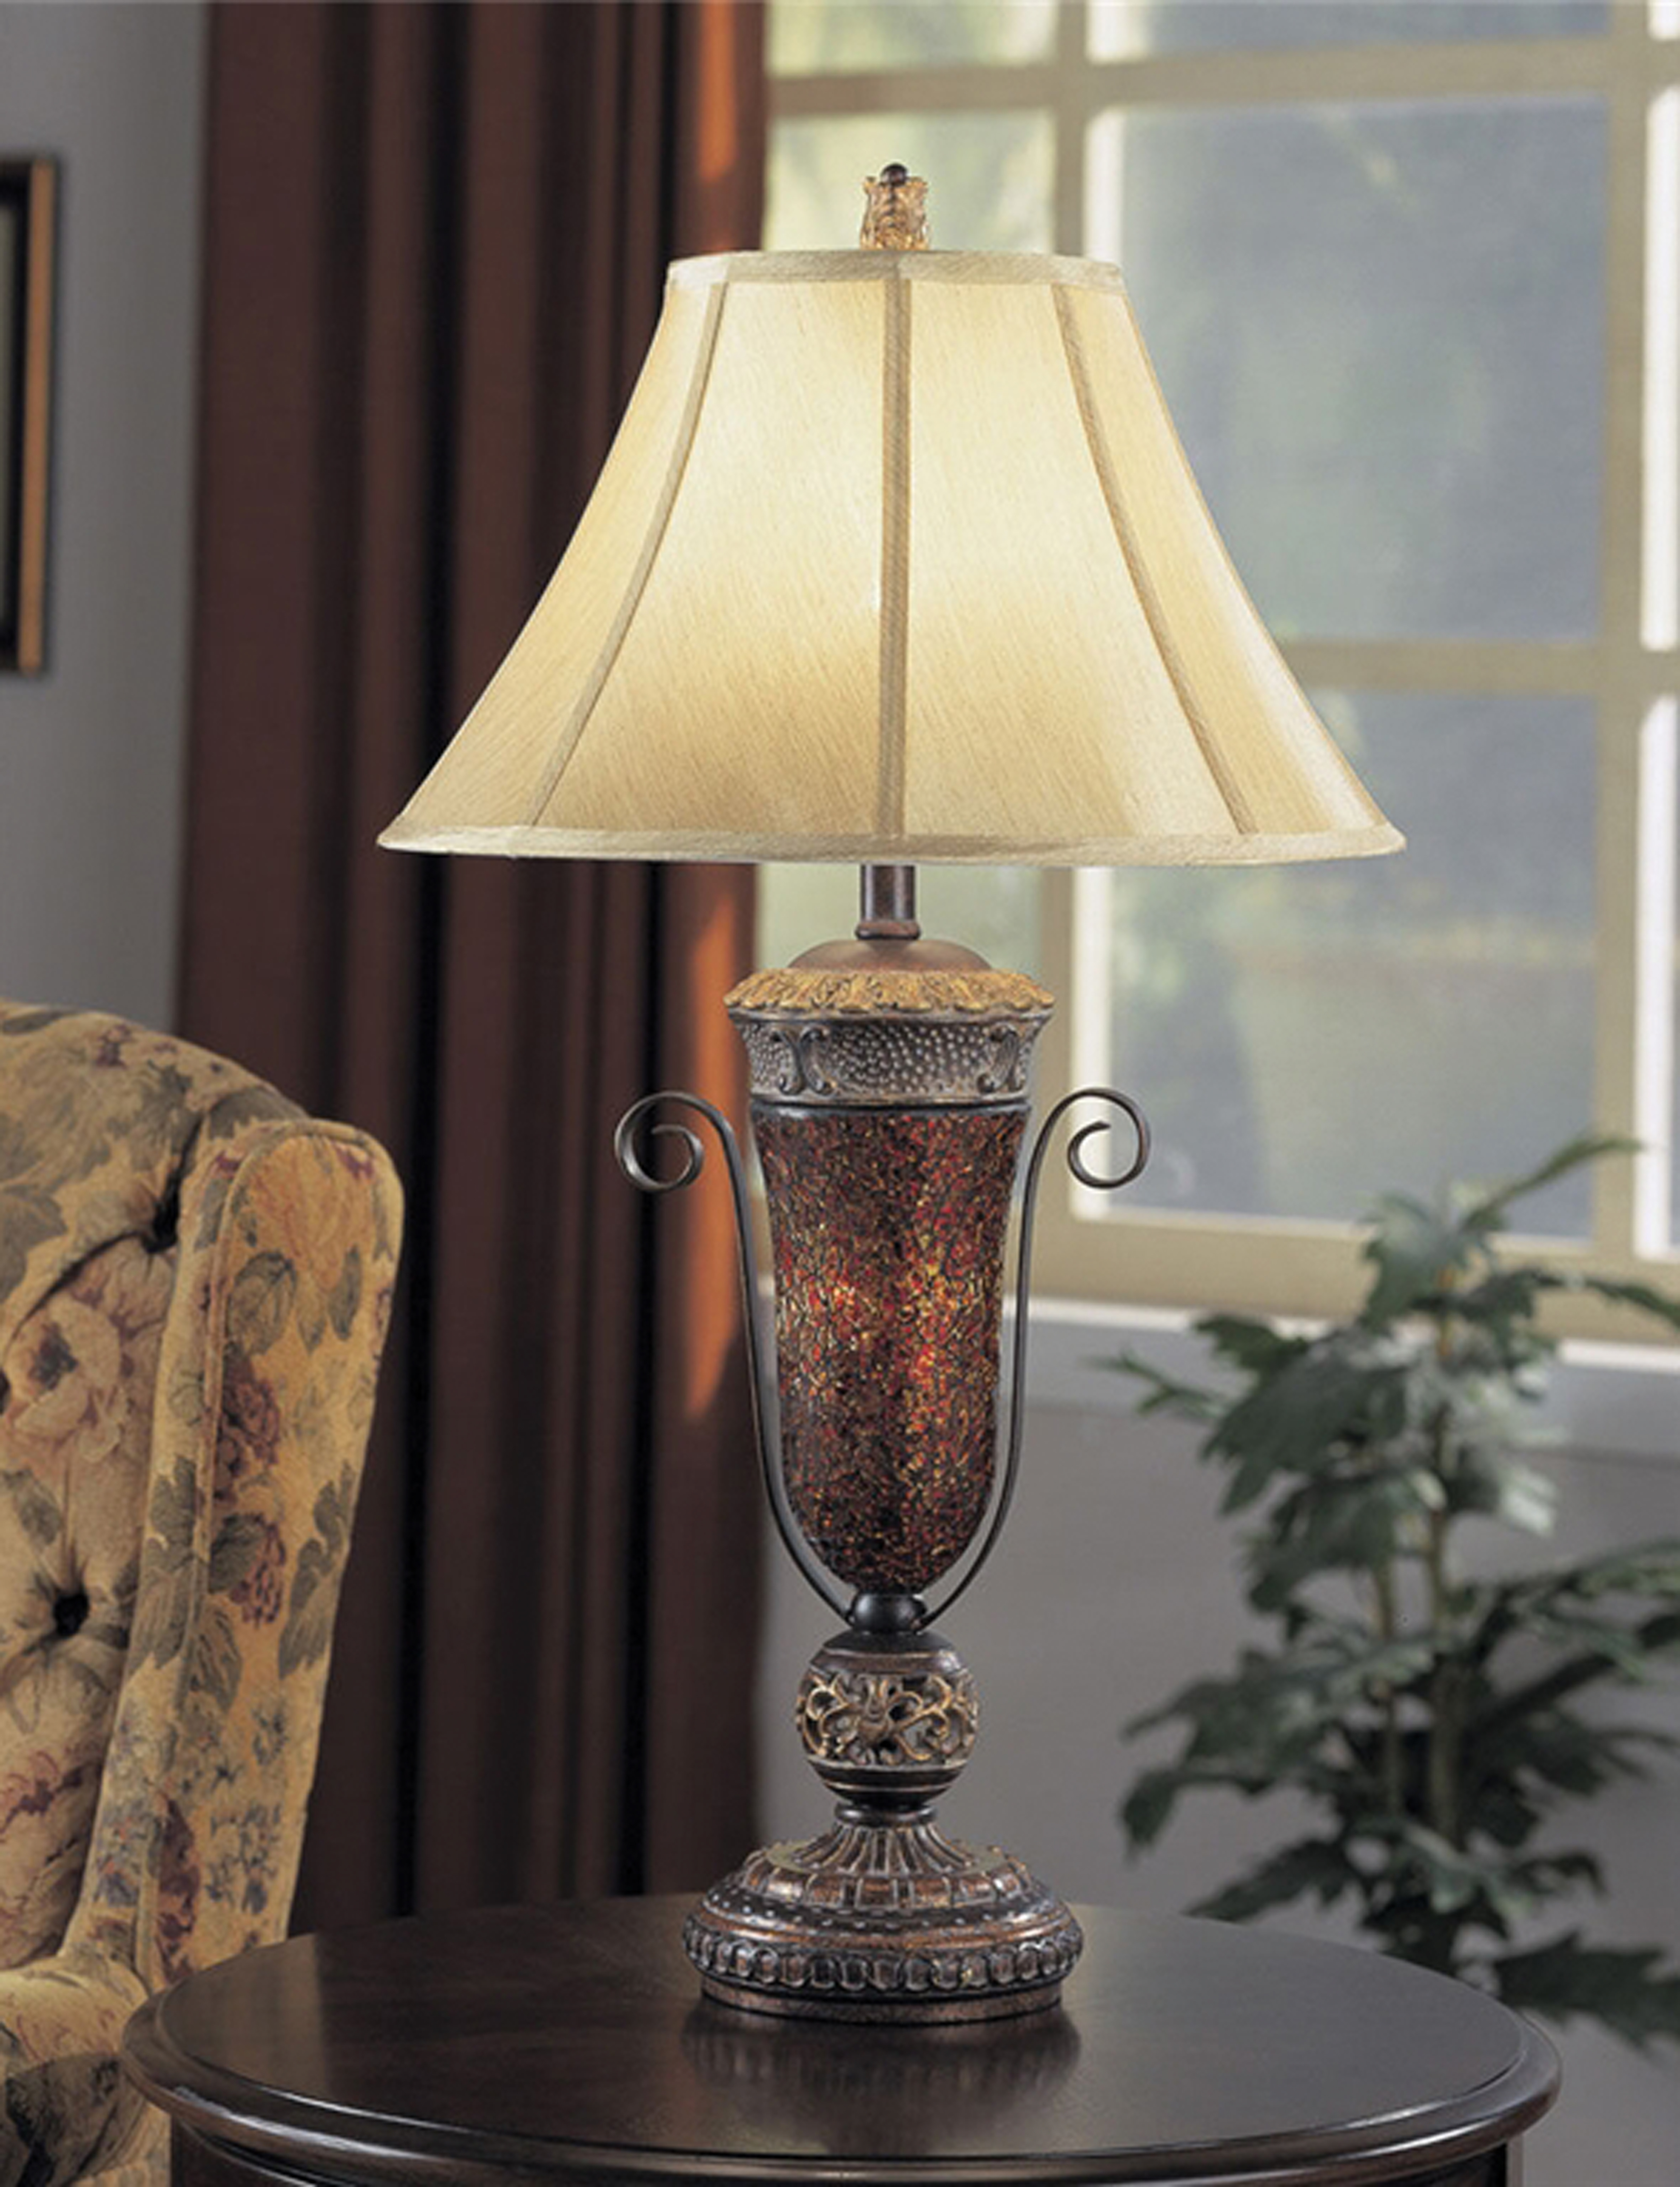 Anthony California, Inc. Lamps and Lighting Mosaic Table Lamp 653385 - Furniture Fair ...